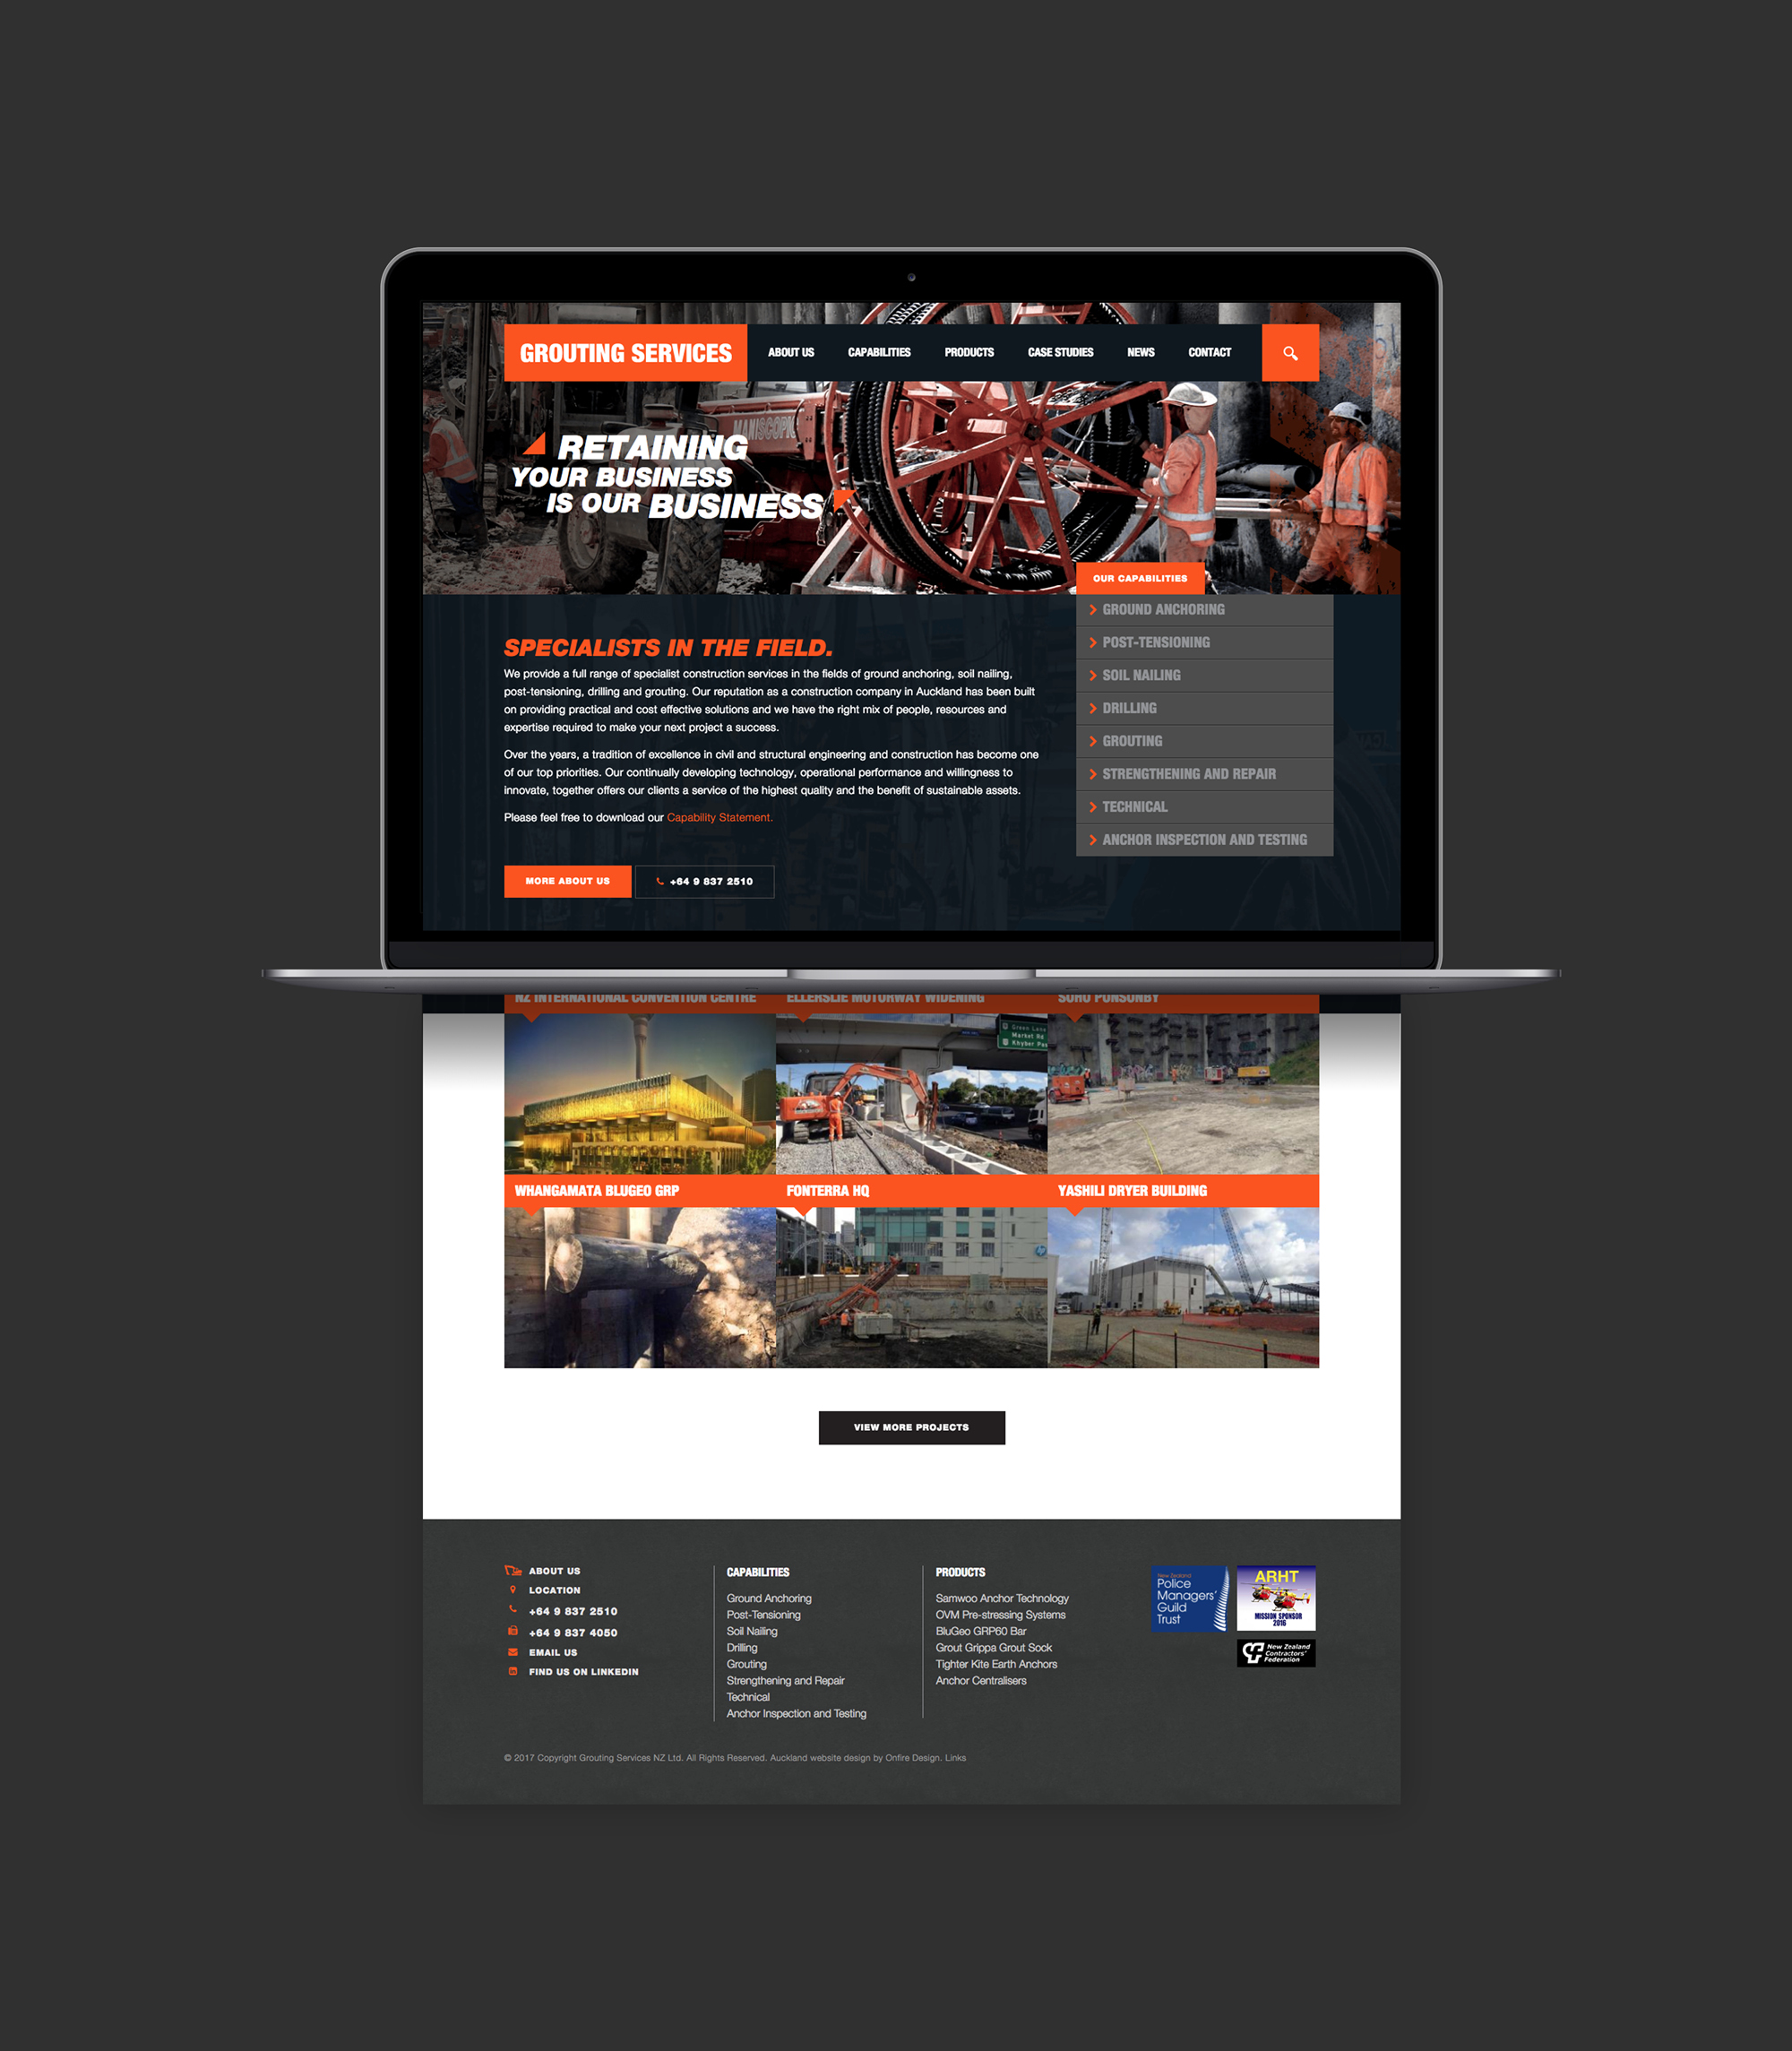 onfire design grouting services branding identity website design 1